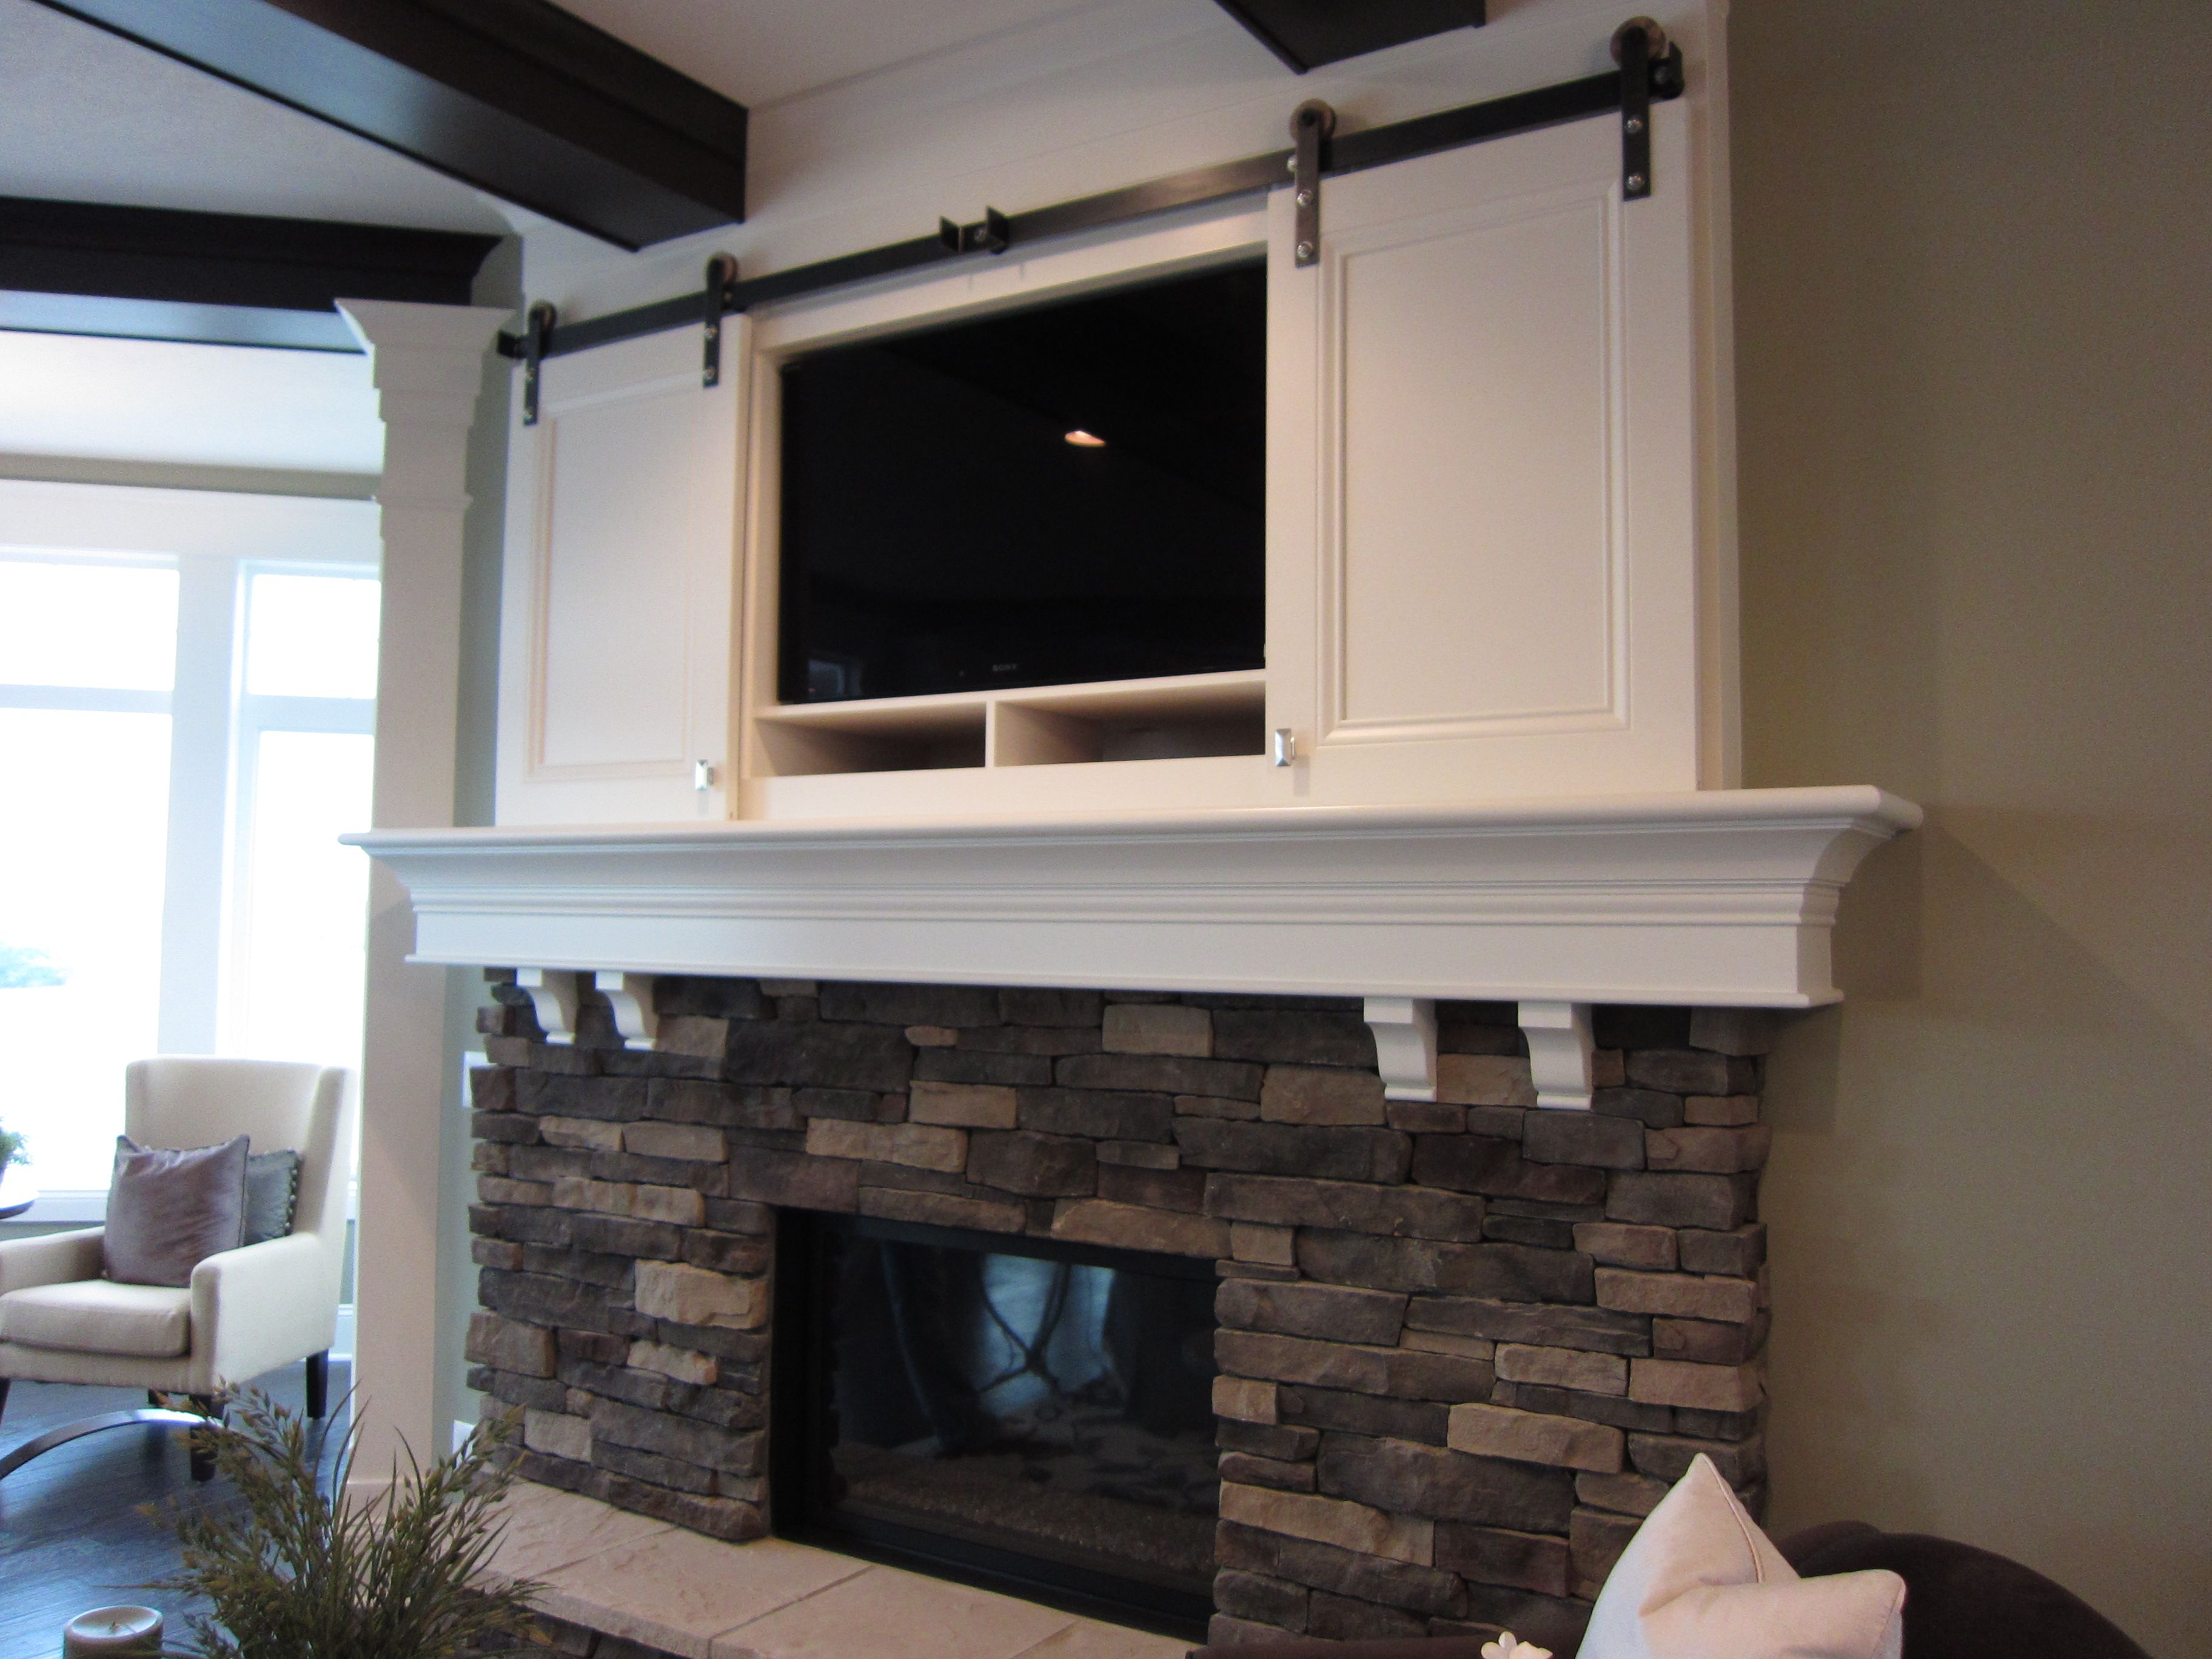 Pin By Shannon Thompson On New House Ideas Wood Fireplace Surrounds Stone Fireplace Surround Stone Fireplace Designs